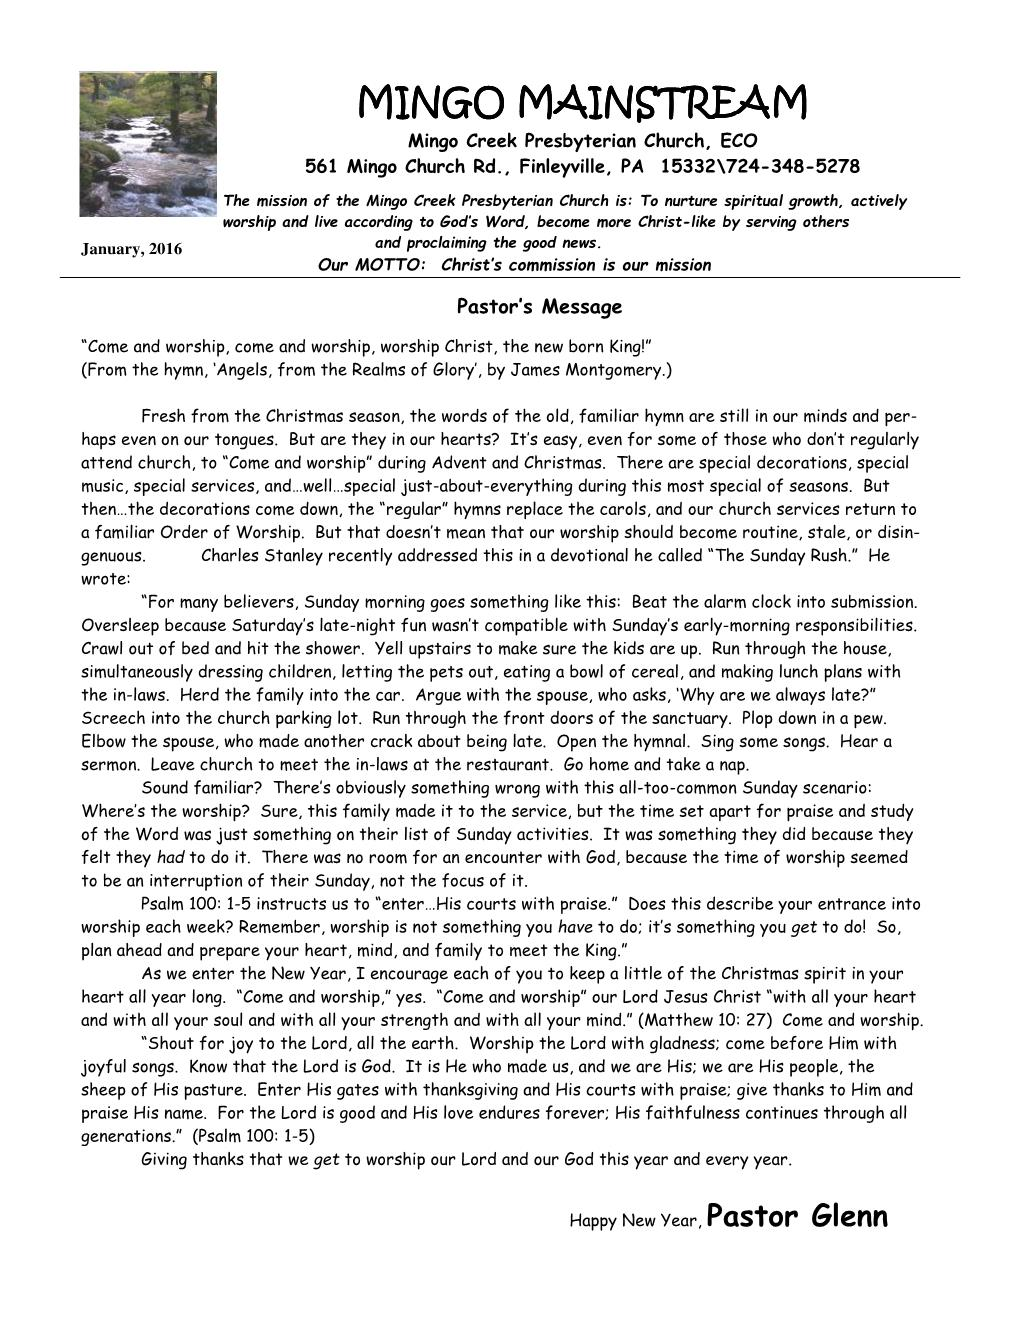 JANUARY NEWSLETTER Page 001.jpg